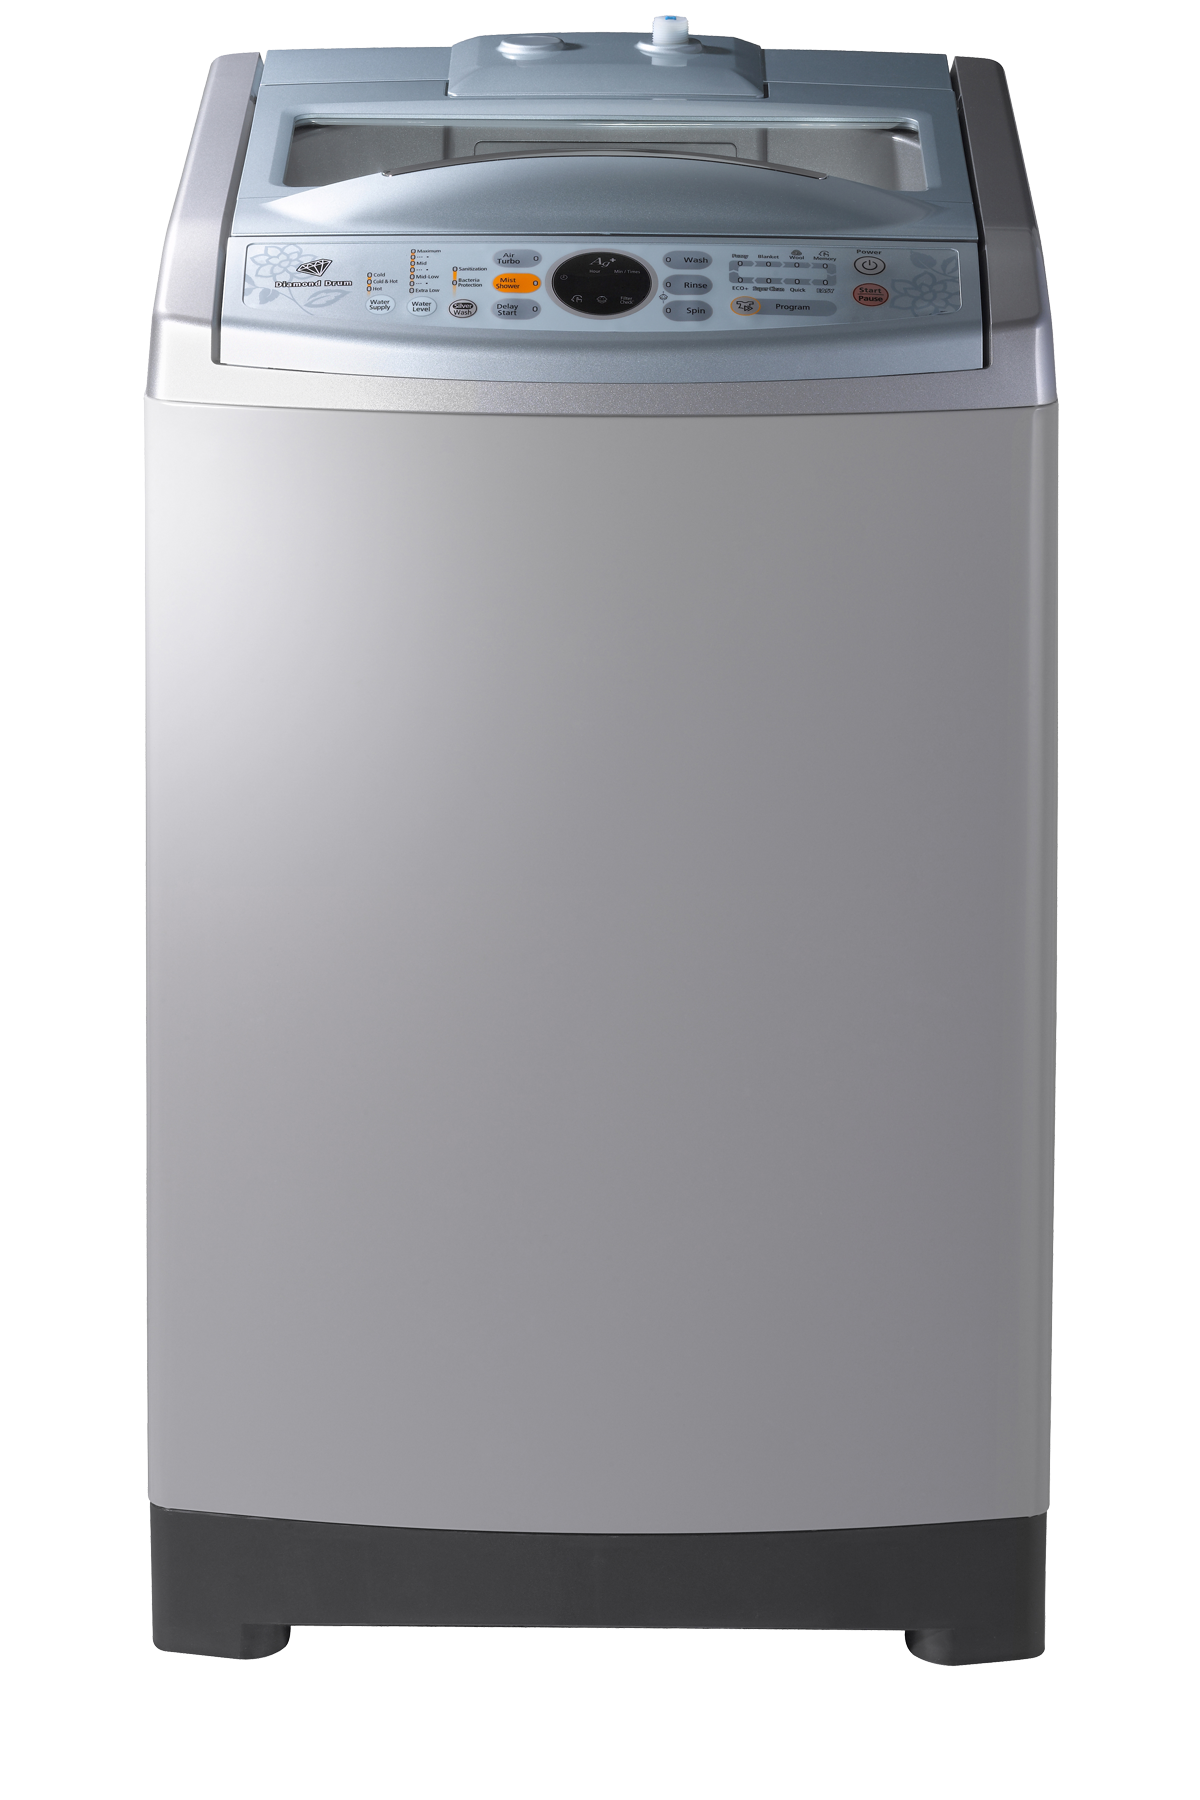 Poseidon2 Top Loader with Air Turbo Dry, 7.5 kg, Silver